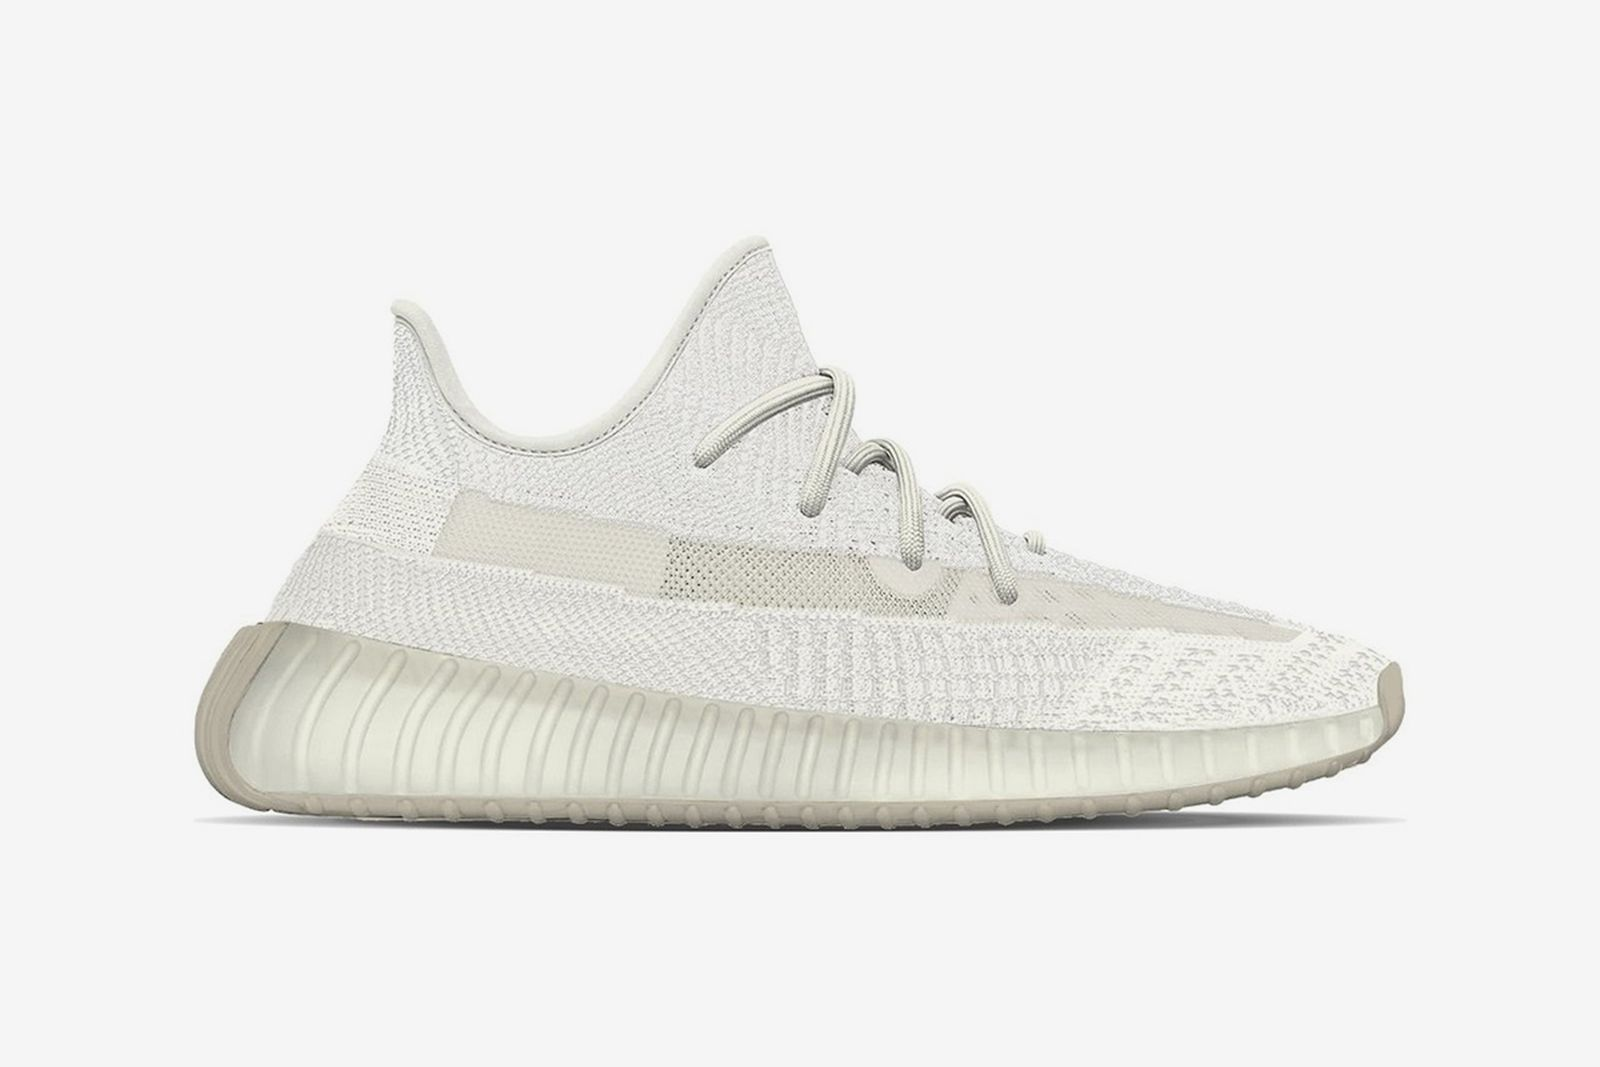 adidas-yeezy-spring-summer-2021-releases-0001